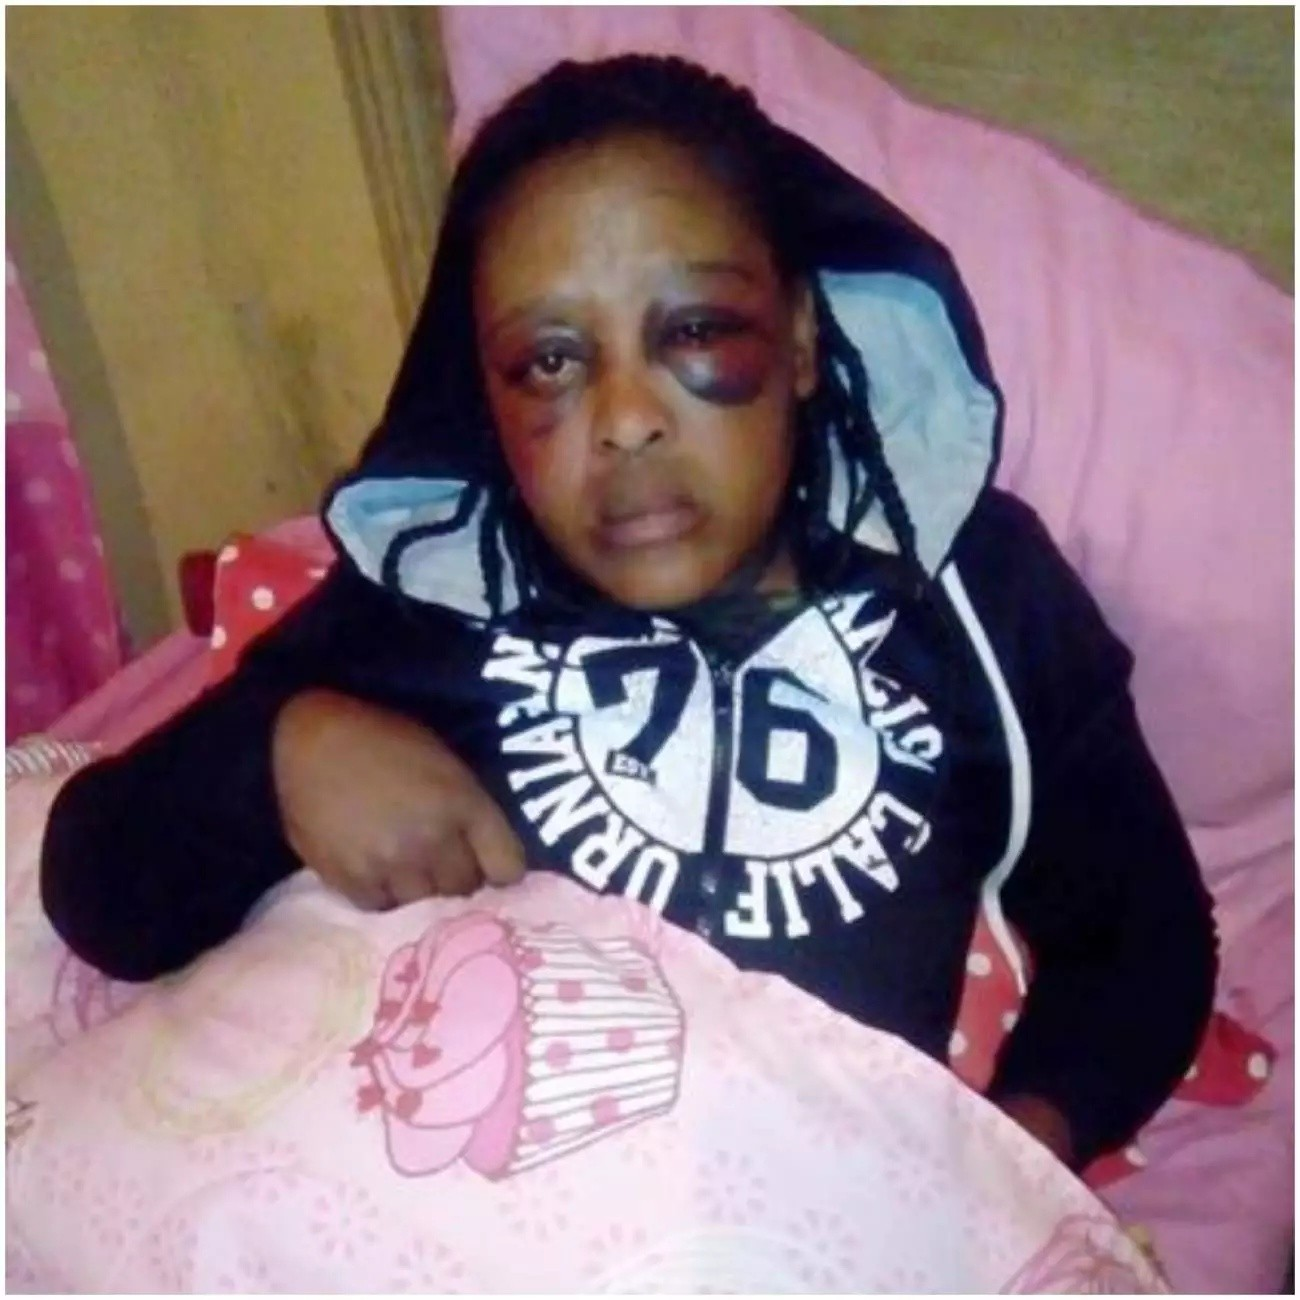 Sadly – Girl Dies On Her Birthday After Being Beaten By Her Boyfriend [See Pictures]